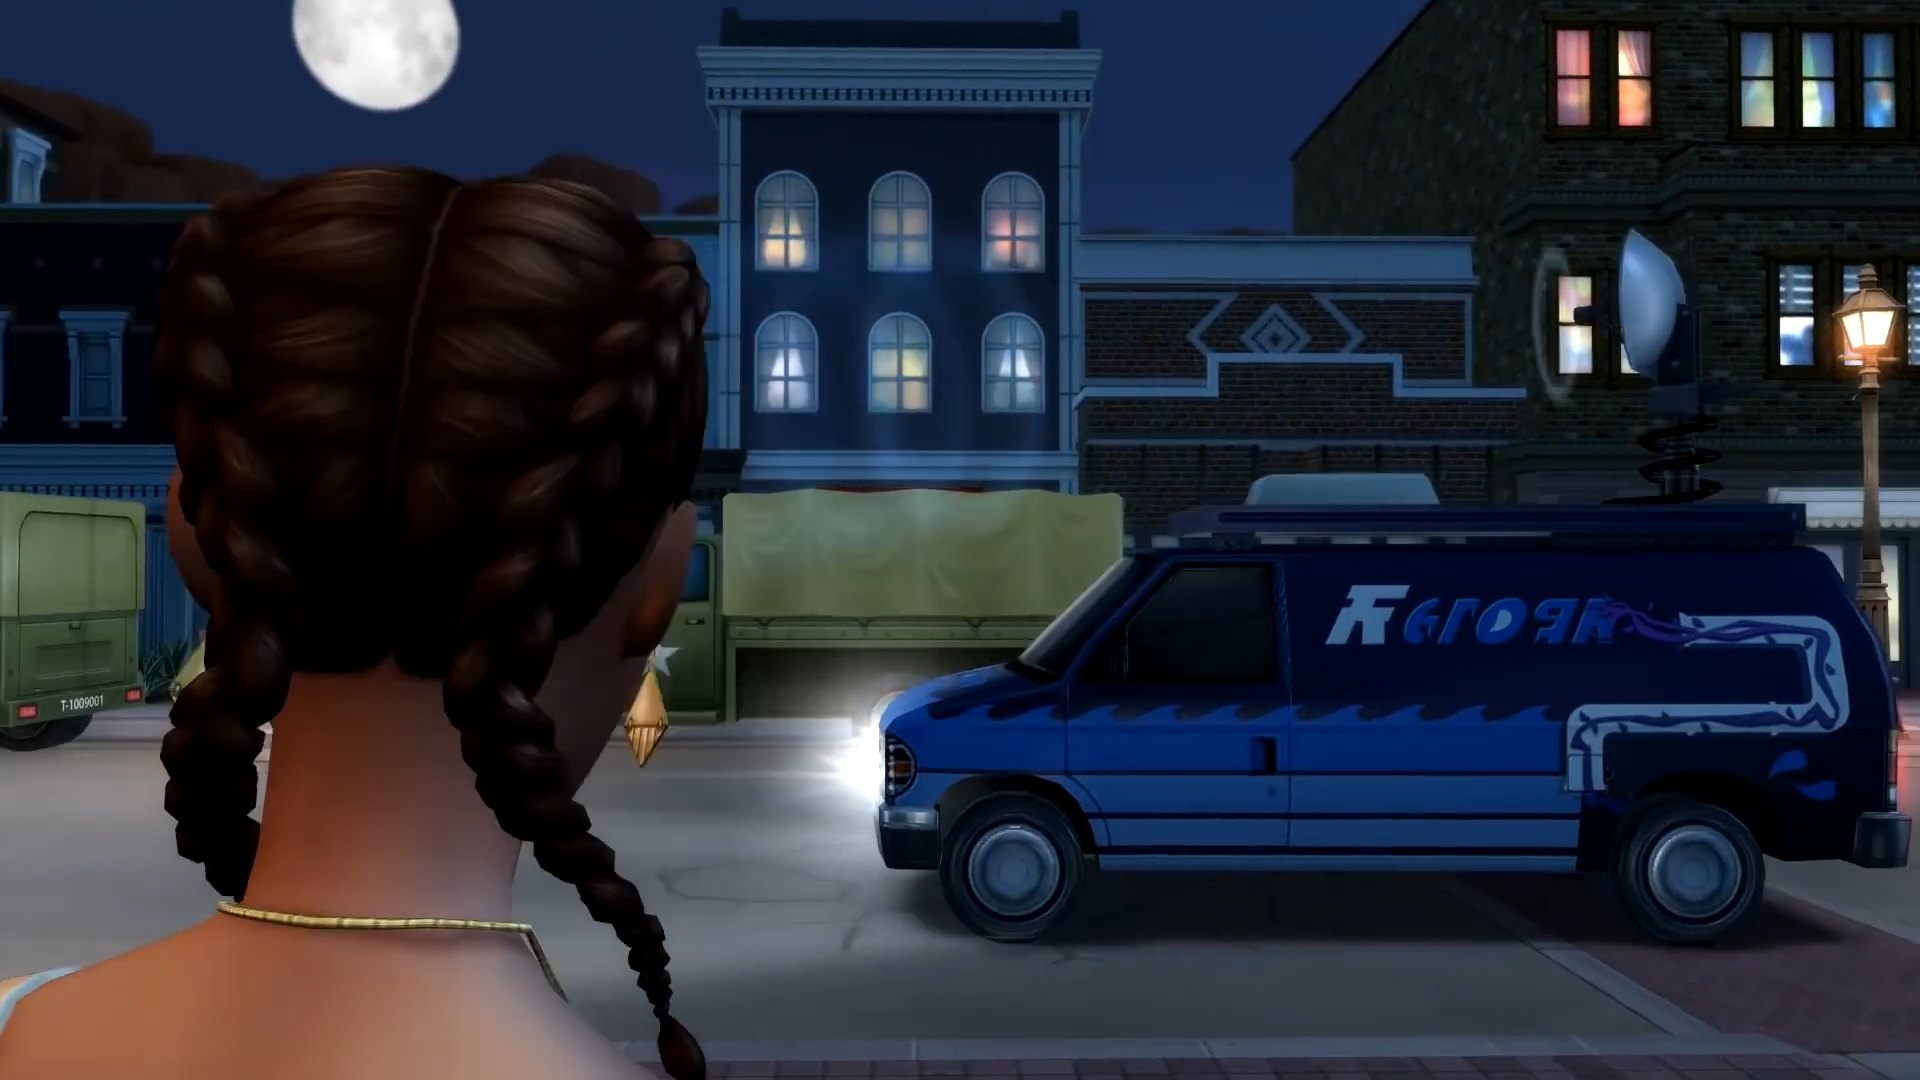 The Sims 4 Strangerville - Government Van - cars are not confirmed in this pack, it is evidently scenery.